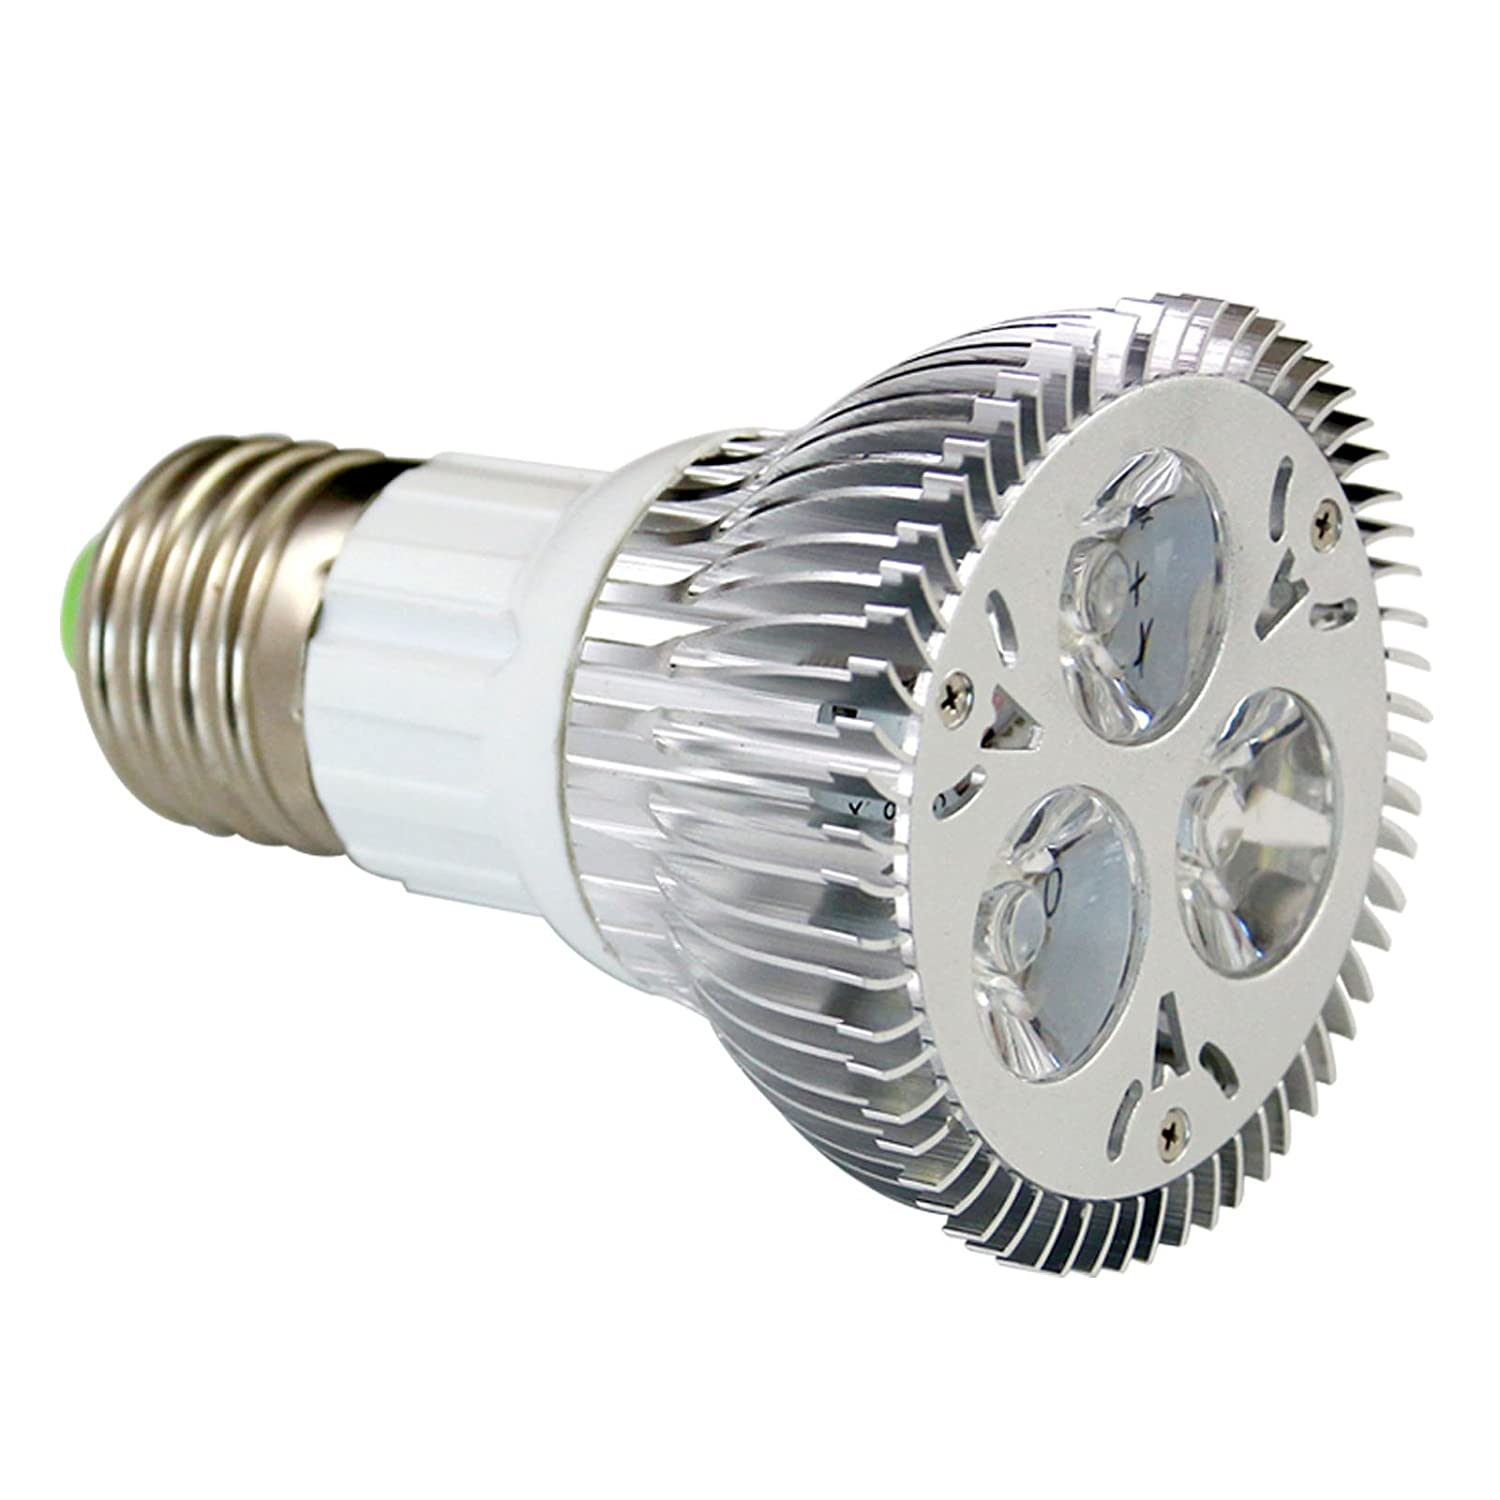 Low cost dimmable led recessed light bulb bright led par20 spotlight bulb 9w led flood light Led light bulbs cost